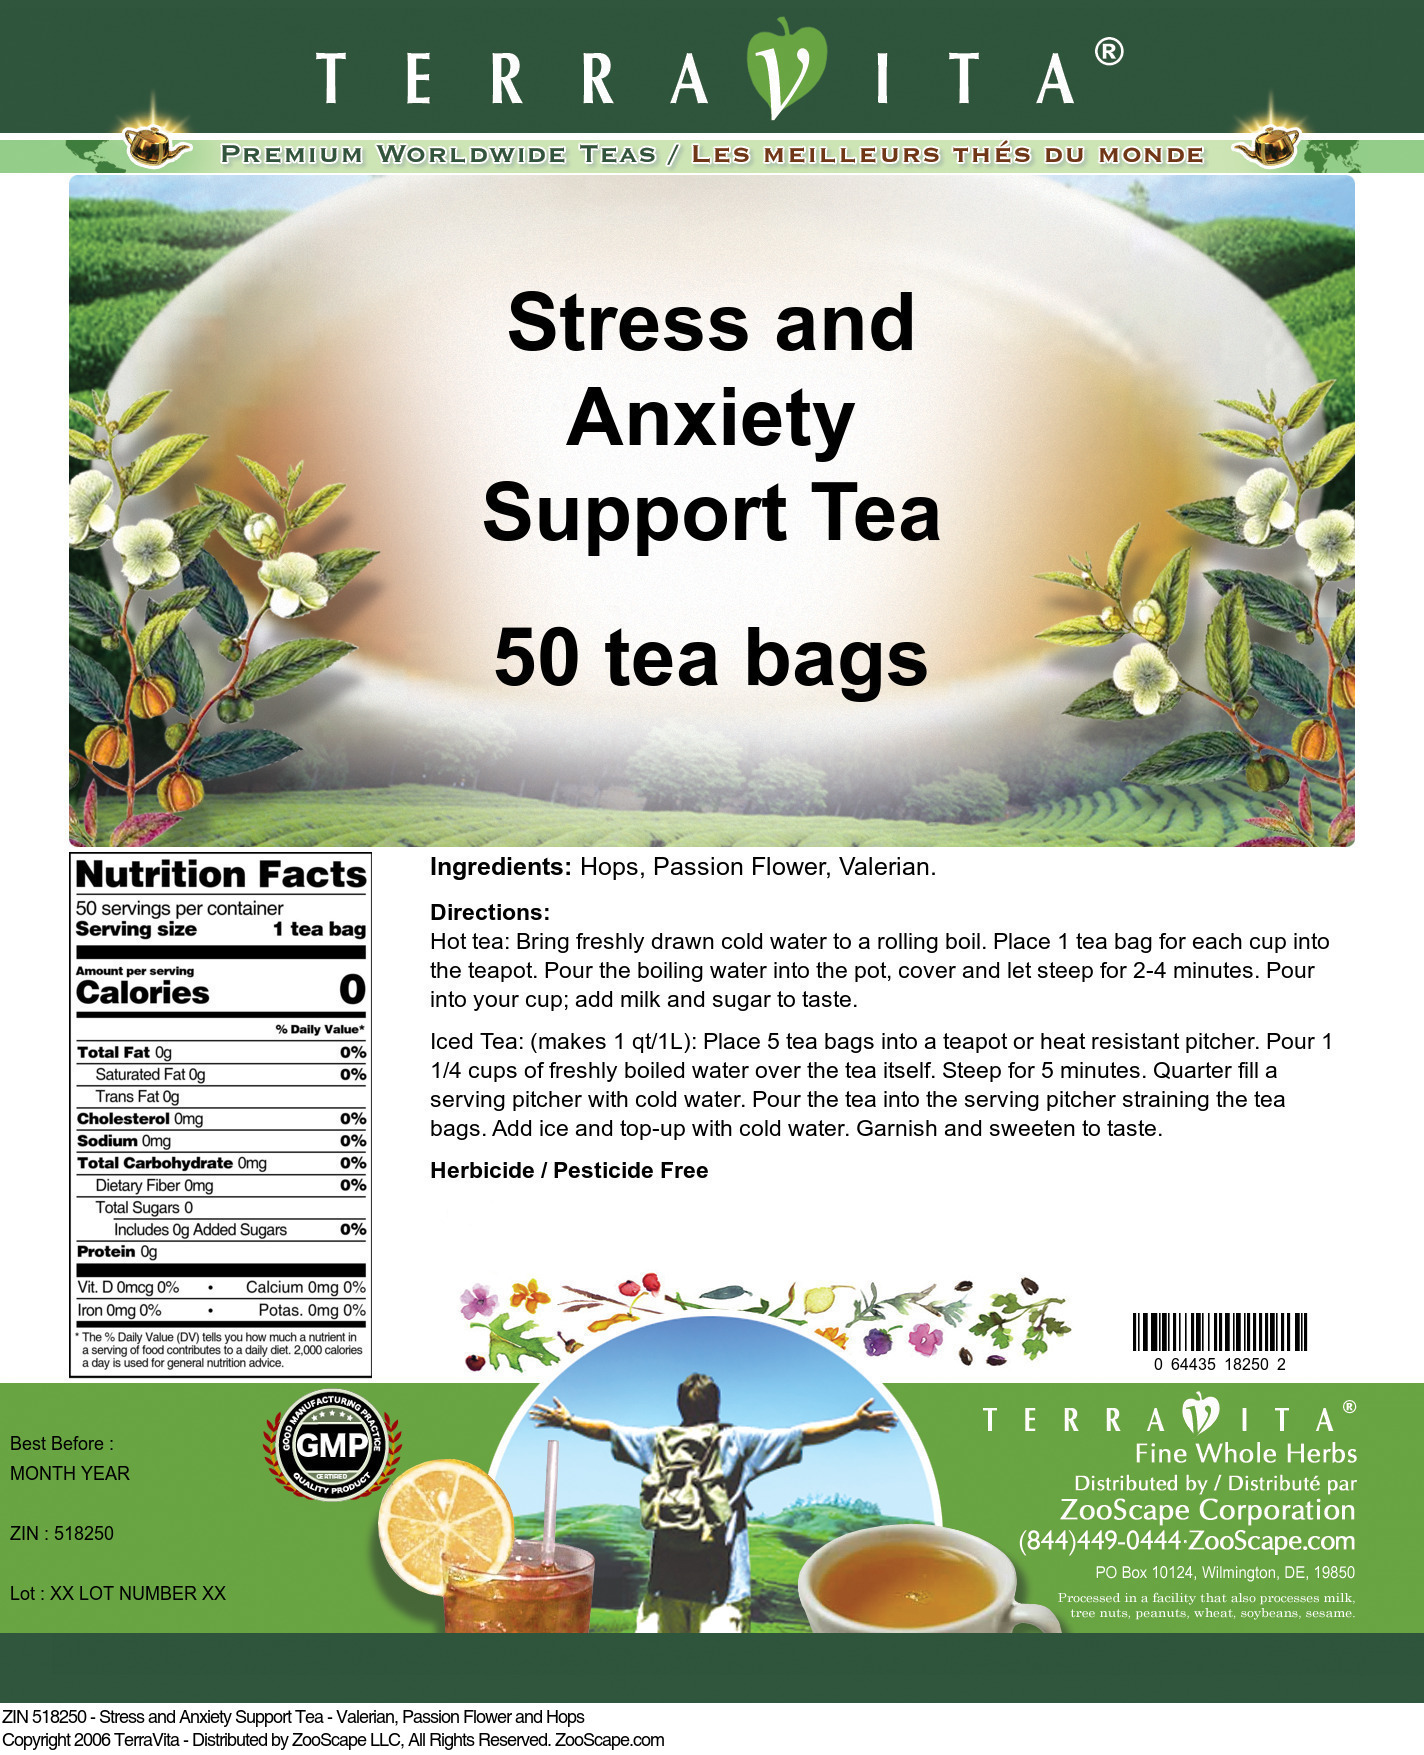 Stress and Anxiety Support Tea - Valerian, Passion Flower and Hops